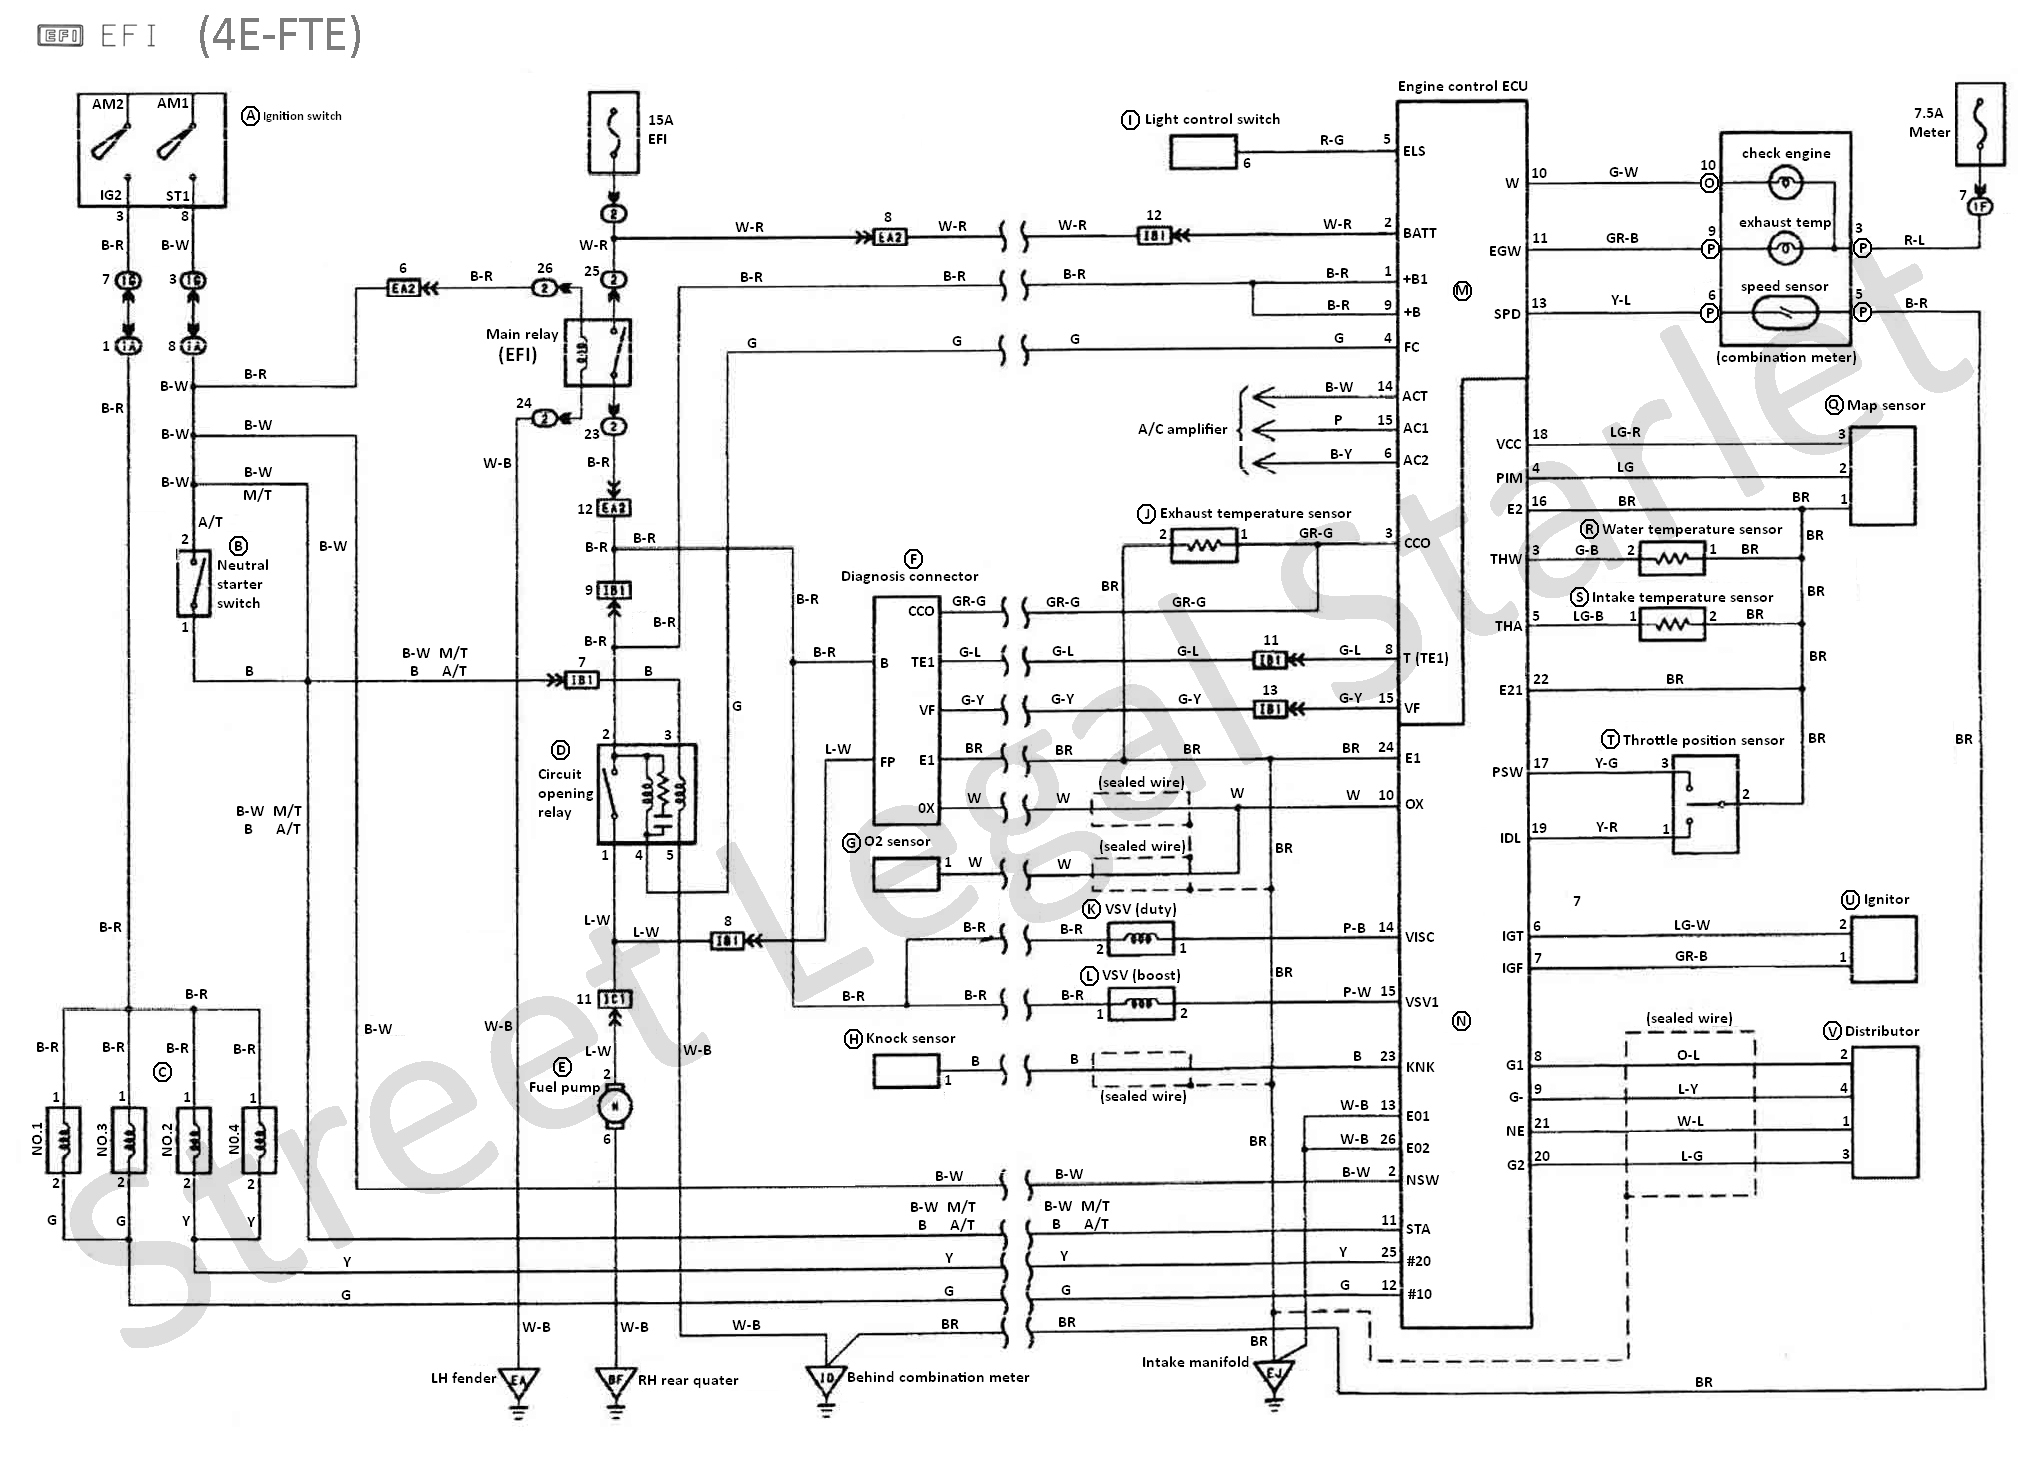 Ecu Pin Out Diagram